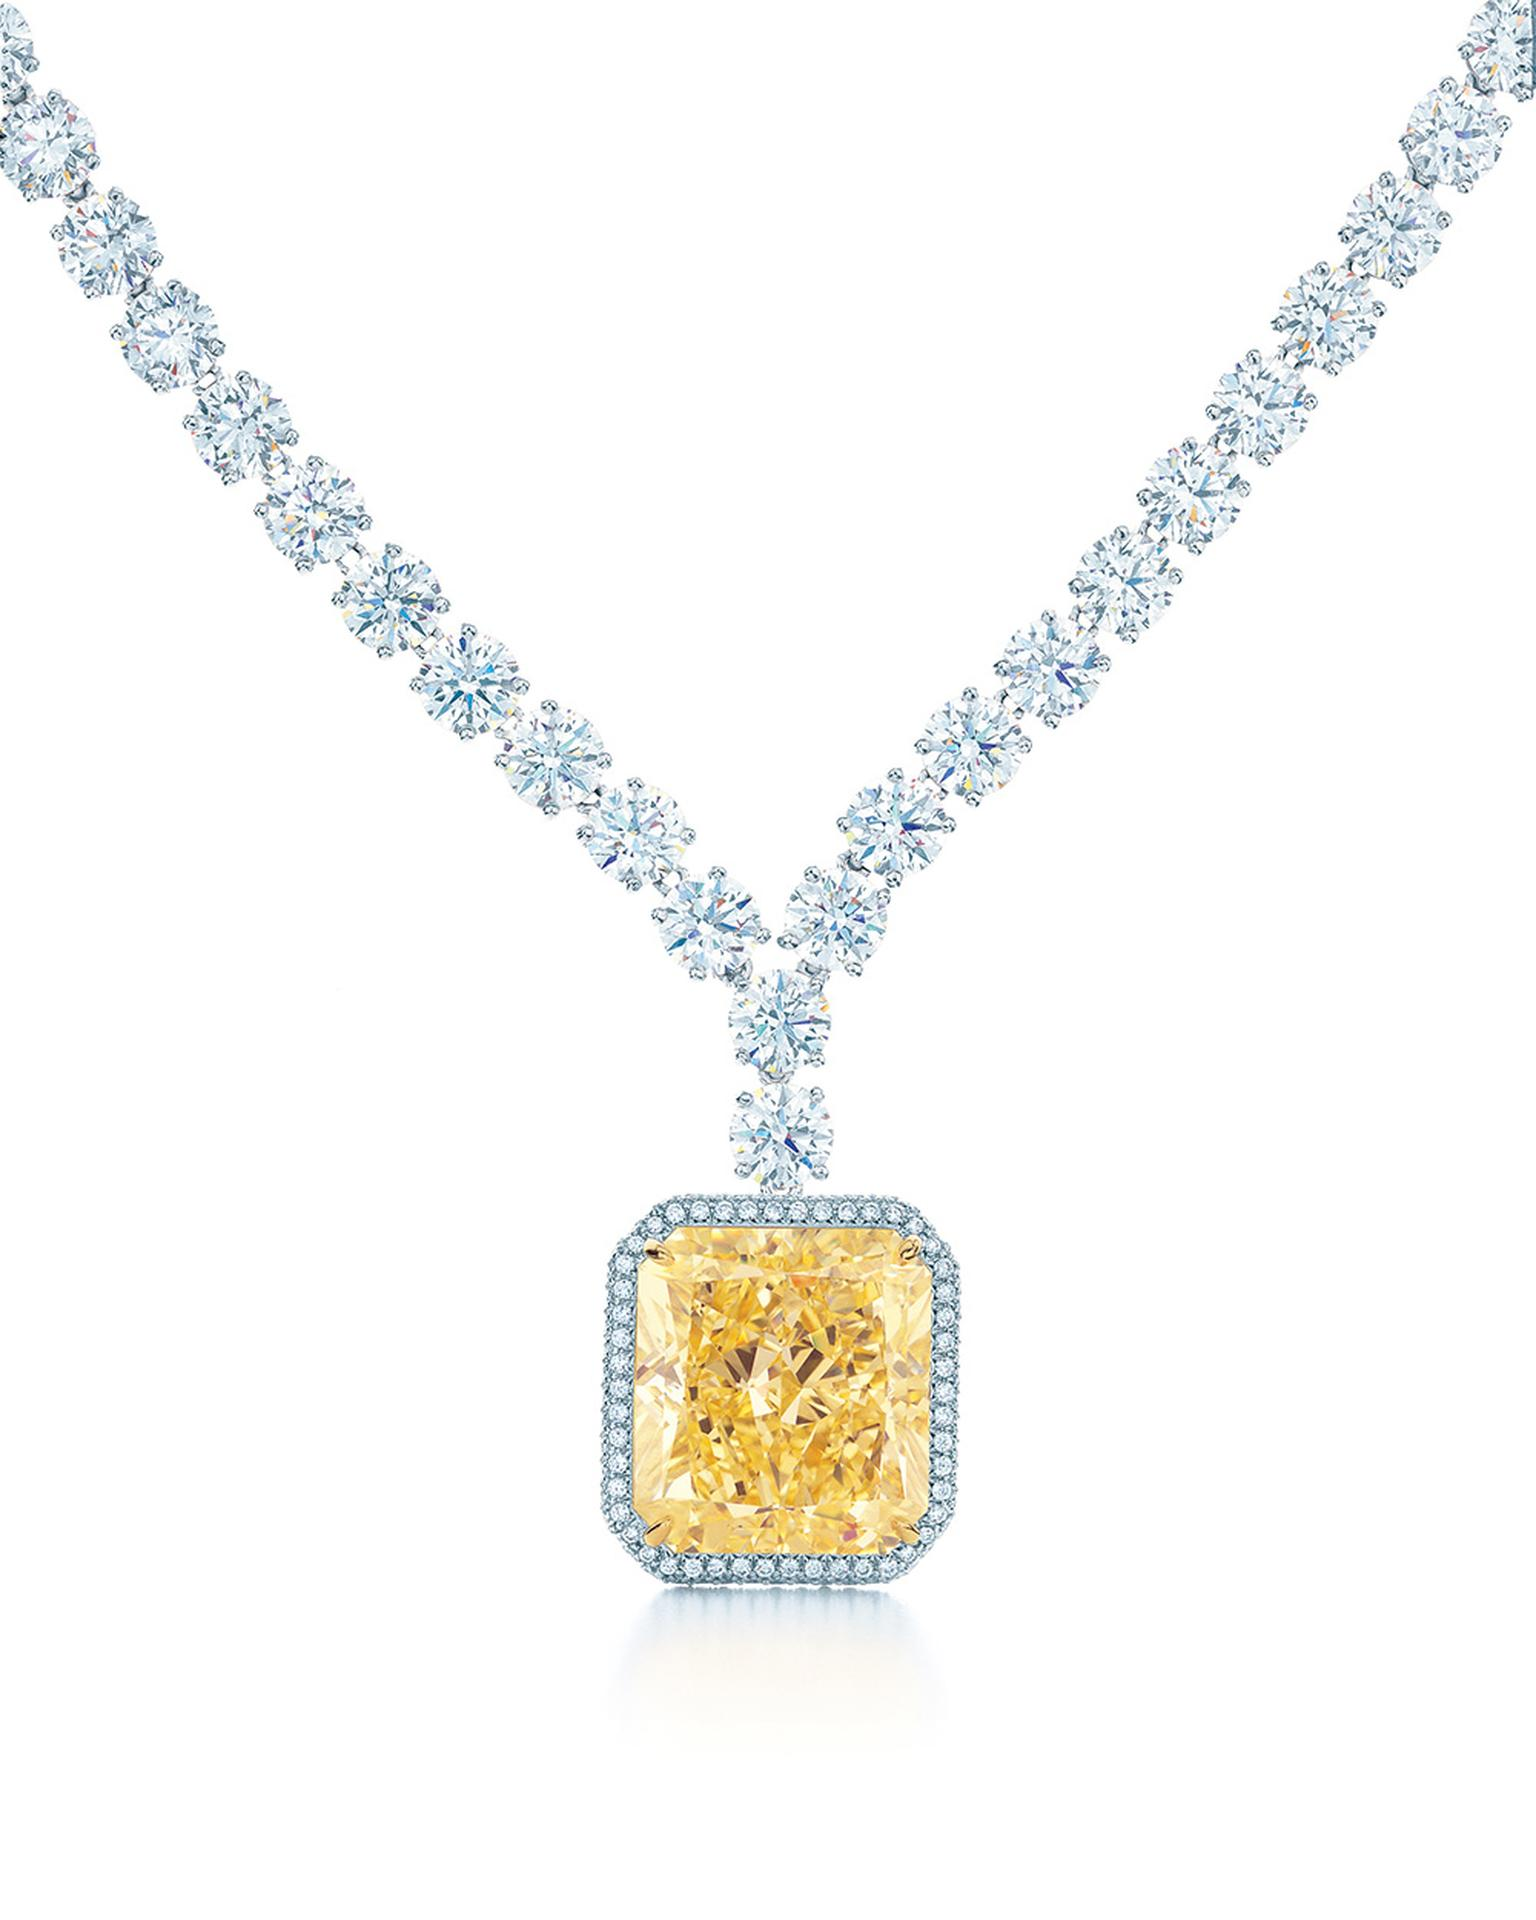 TiffanyYellowDiamondnecklace2214